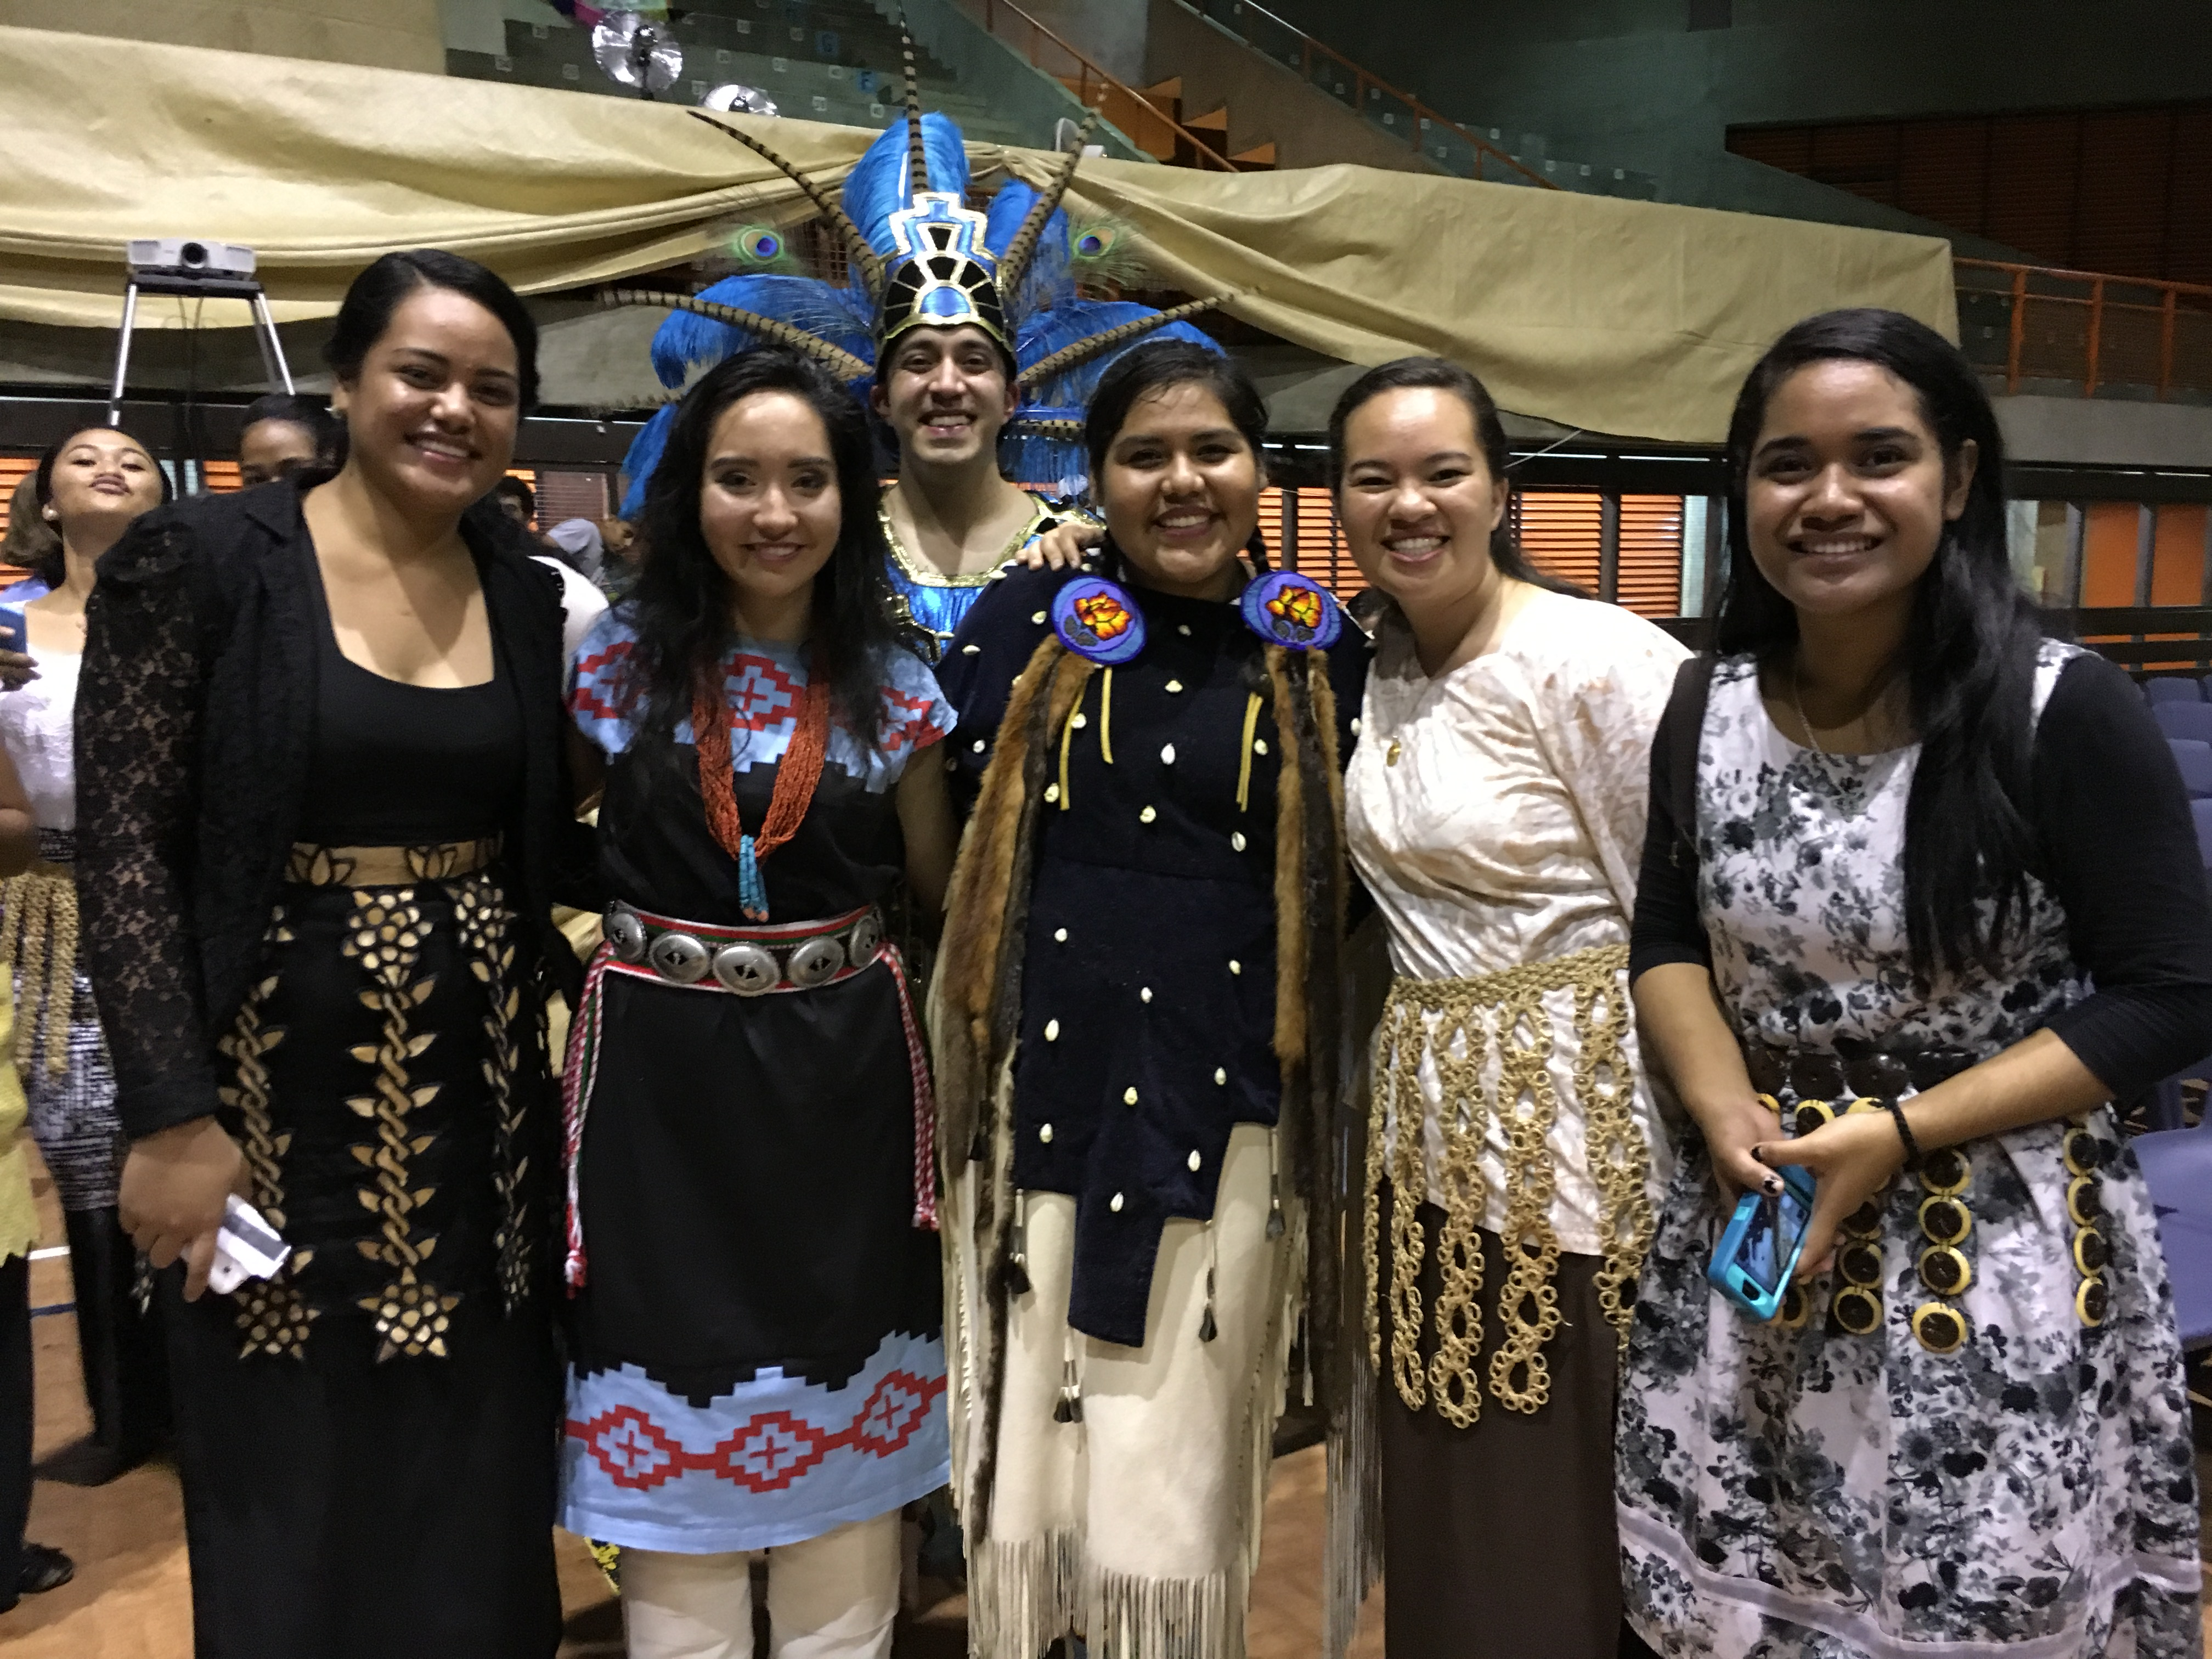 BYU 'Living Legends' Perform Before the Queen of Tonga